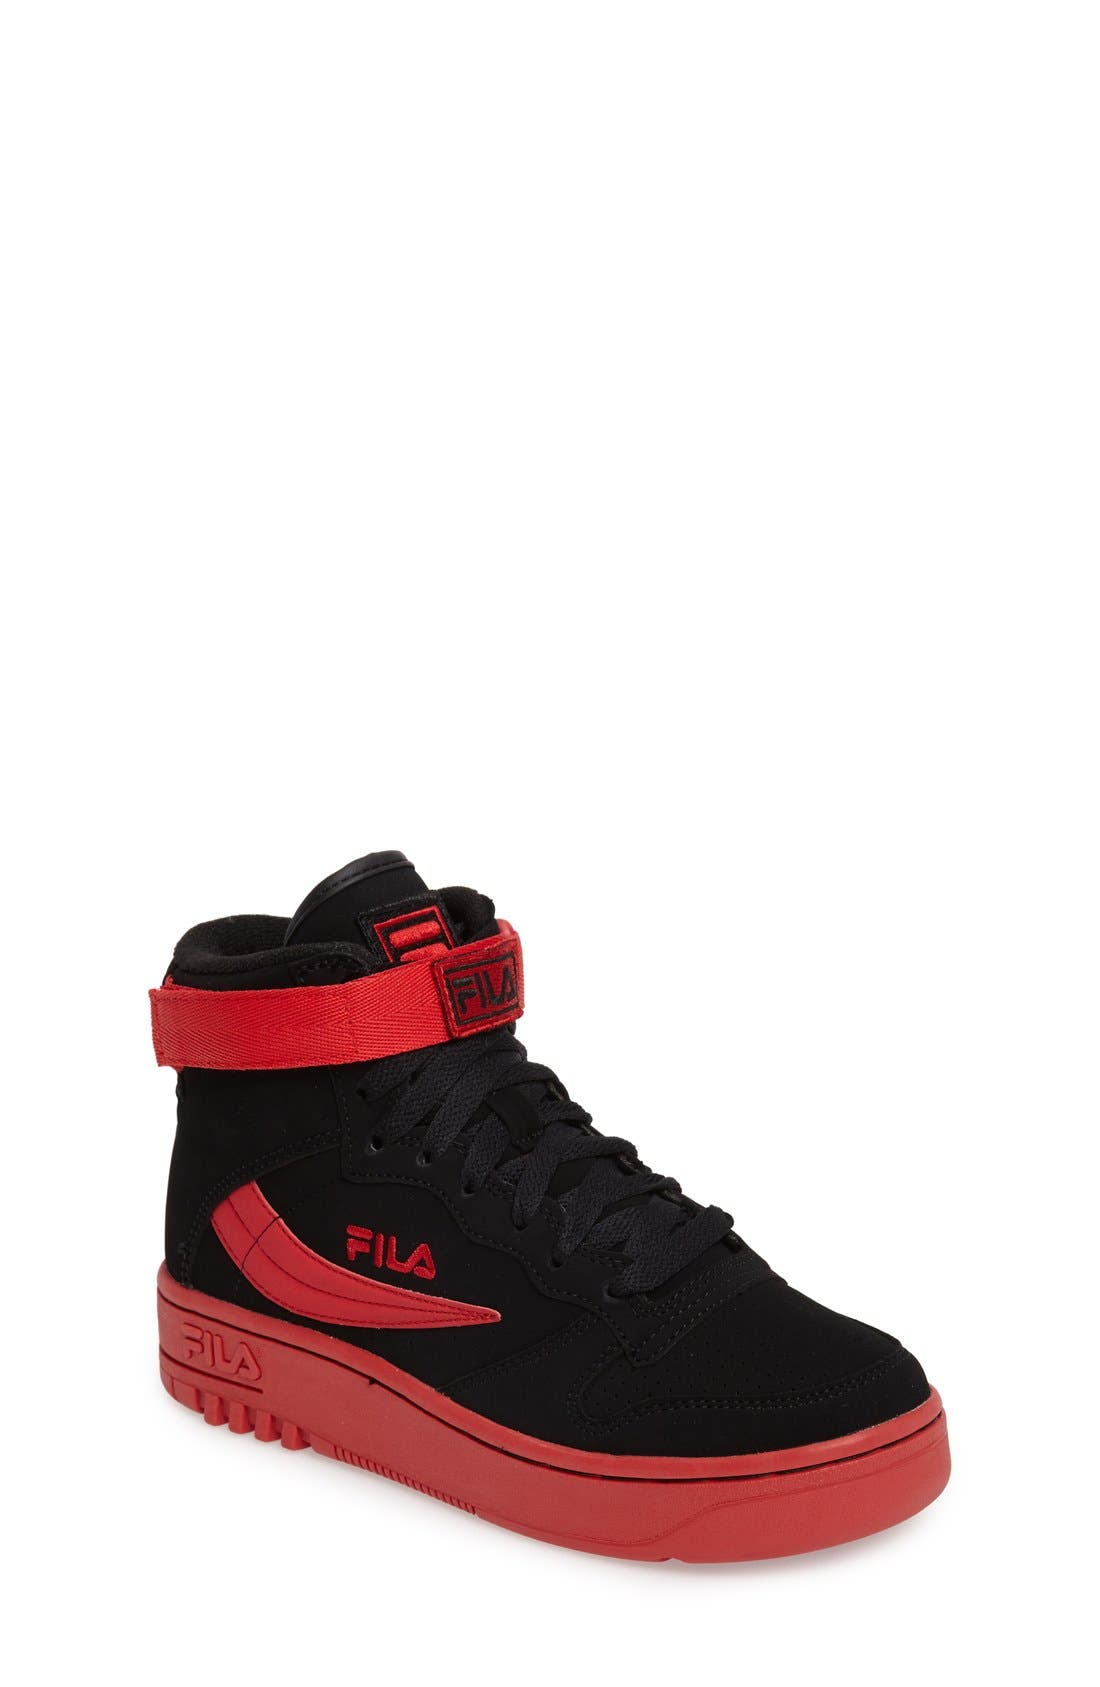 USA FX-100 High Top Sneaker,                         Main,                         color, Black/ Red